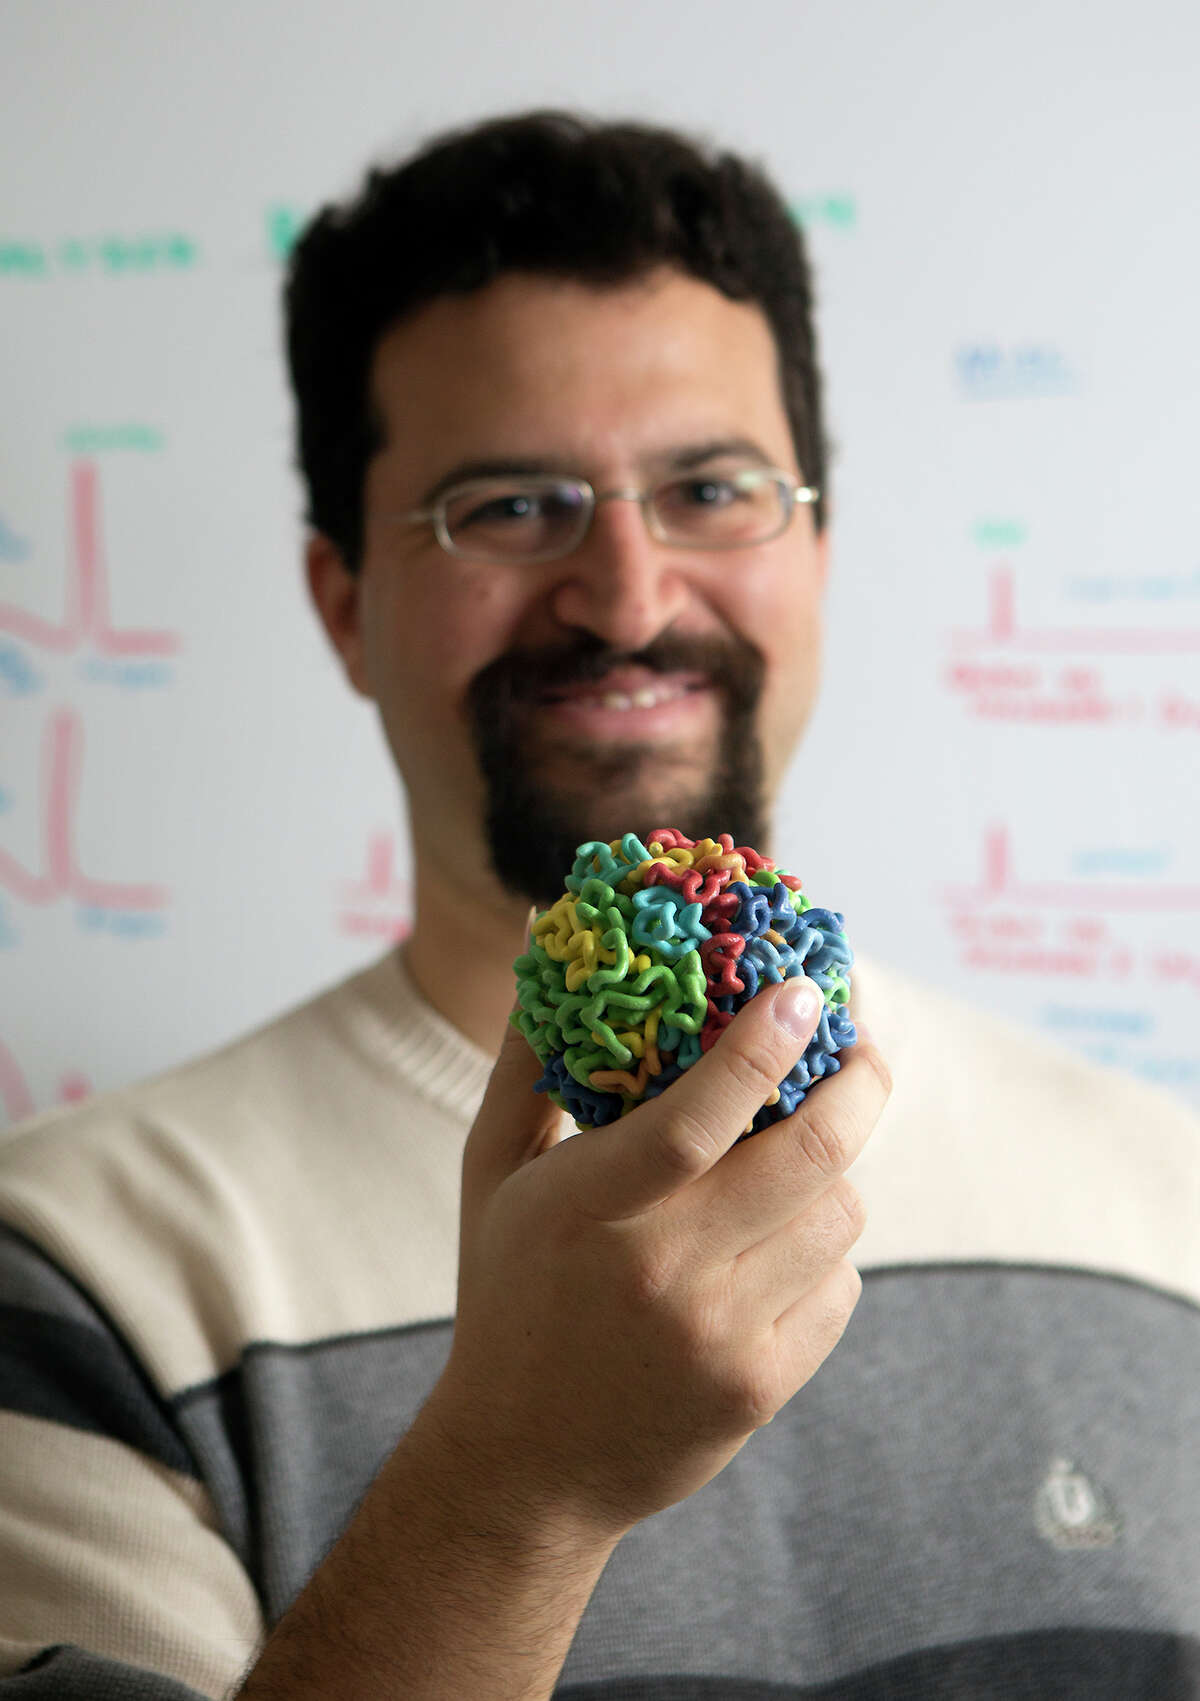 Erez Lieberman Aiden Aiden directs the Aiden Lab - Center for Genome Architecture at Baylor College of Medicine and teaches at Rice University. His work was central to the development of the Google Ngram and to the field of culturomics in general. Most recently, his breakthrough work has shown how the DNA in a human cell folds in upon itself.